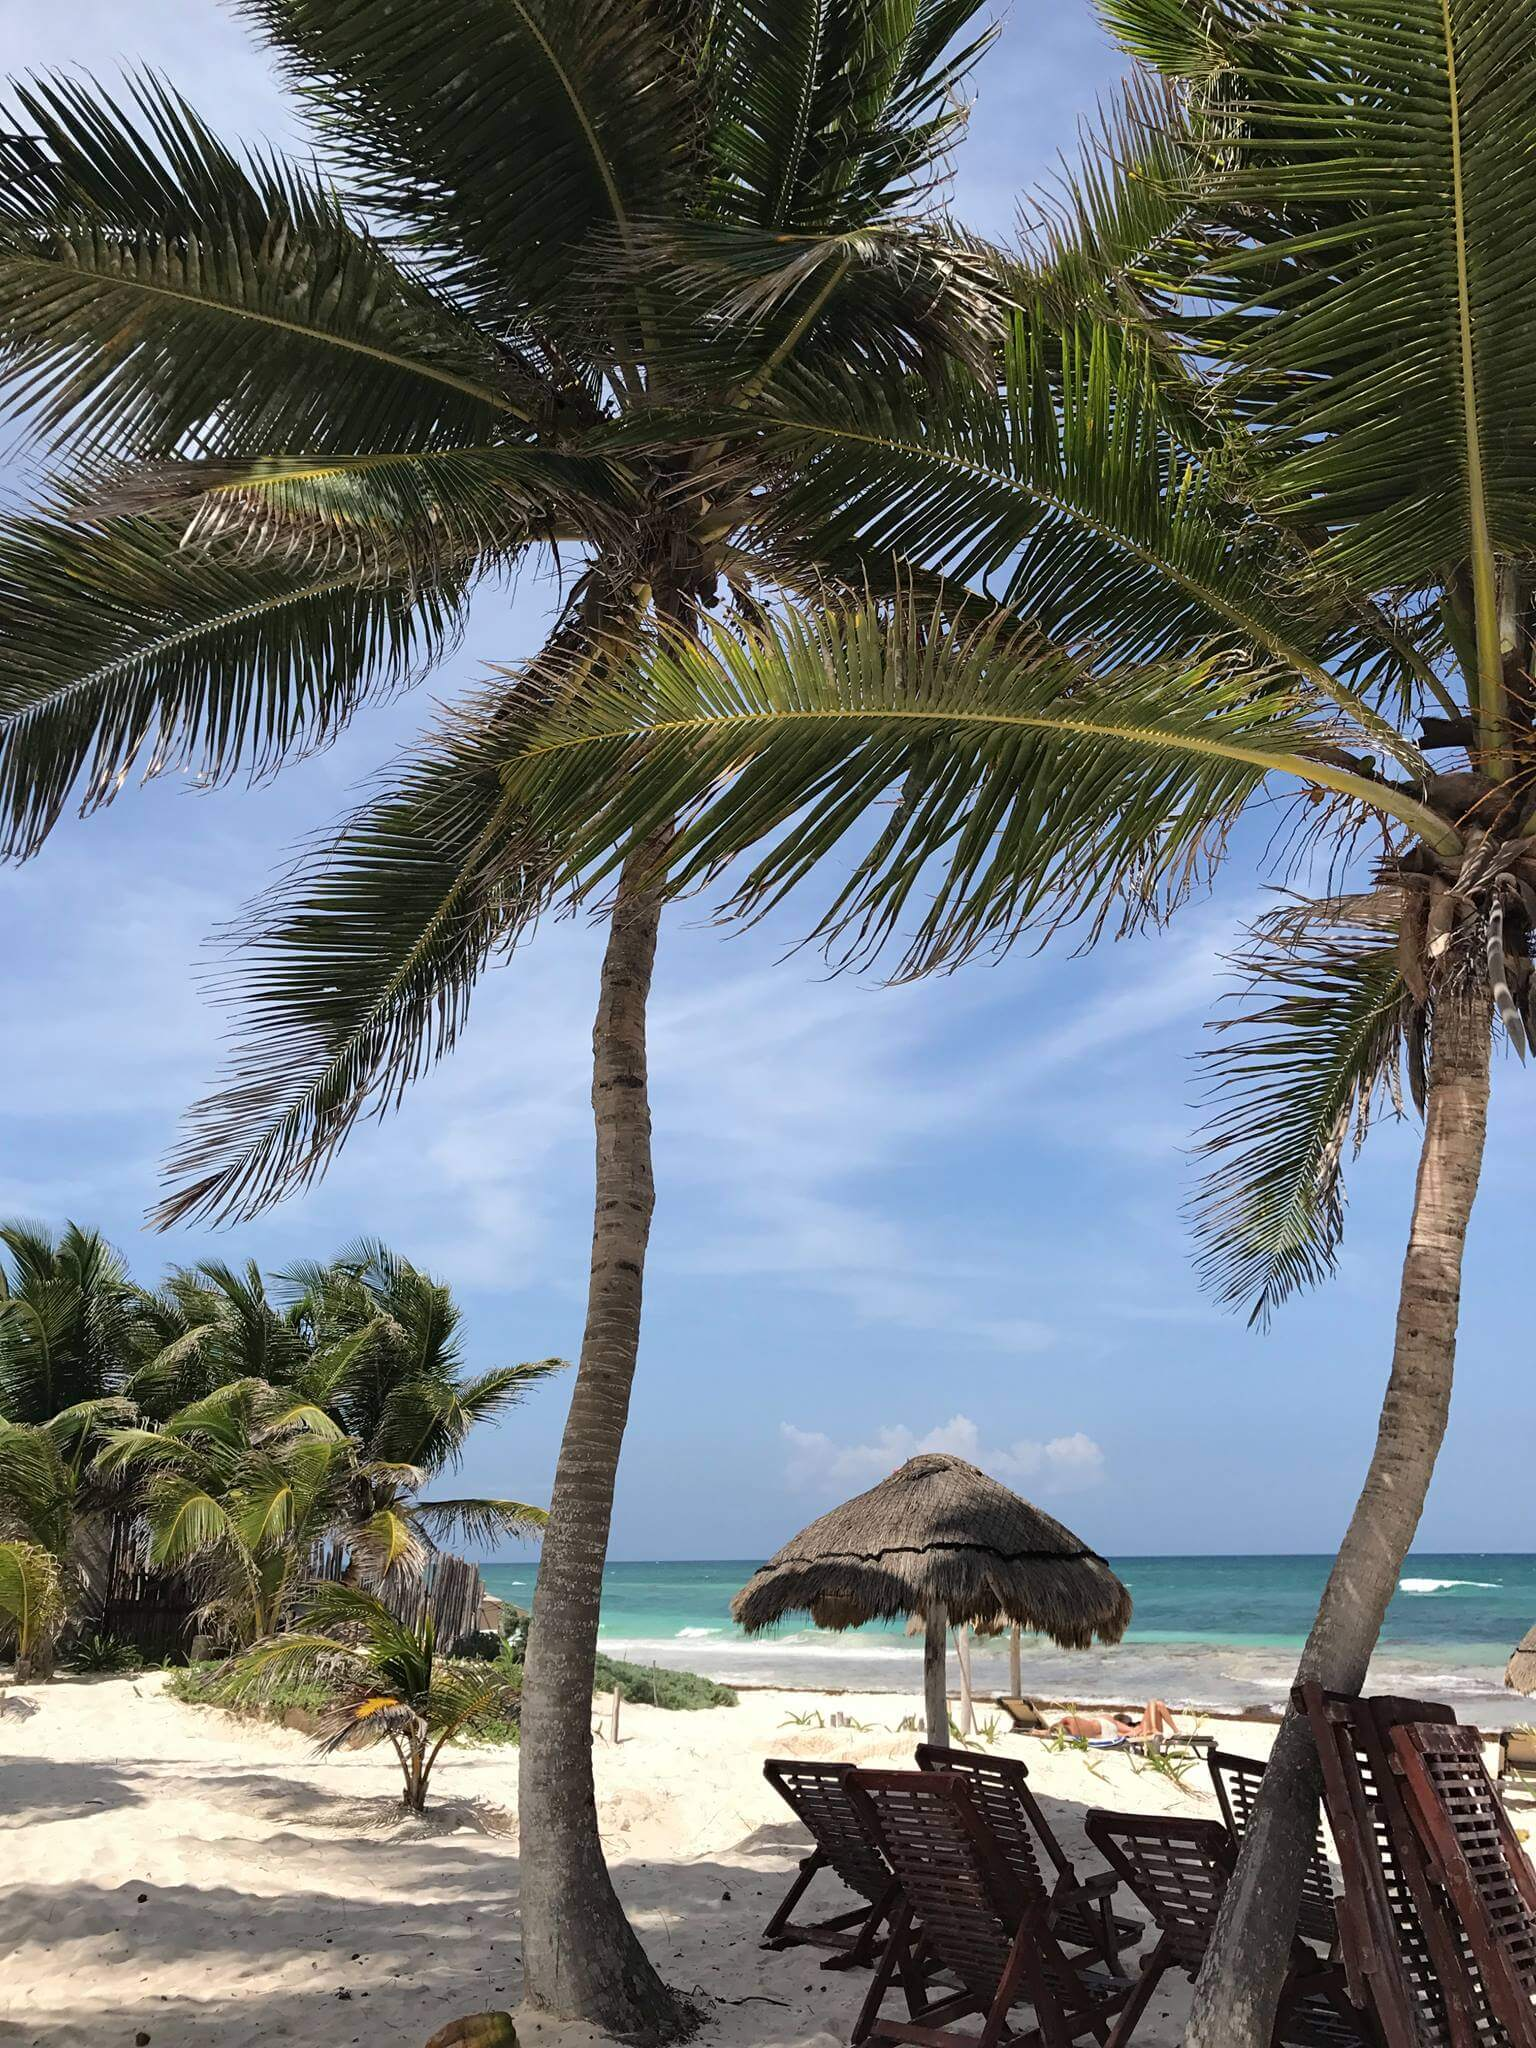 a sandy beach with palm trees swaying